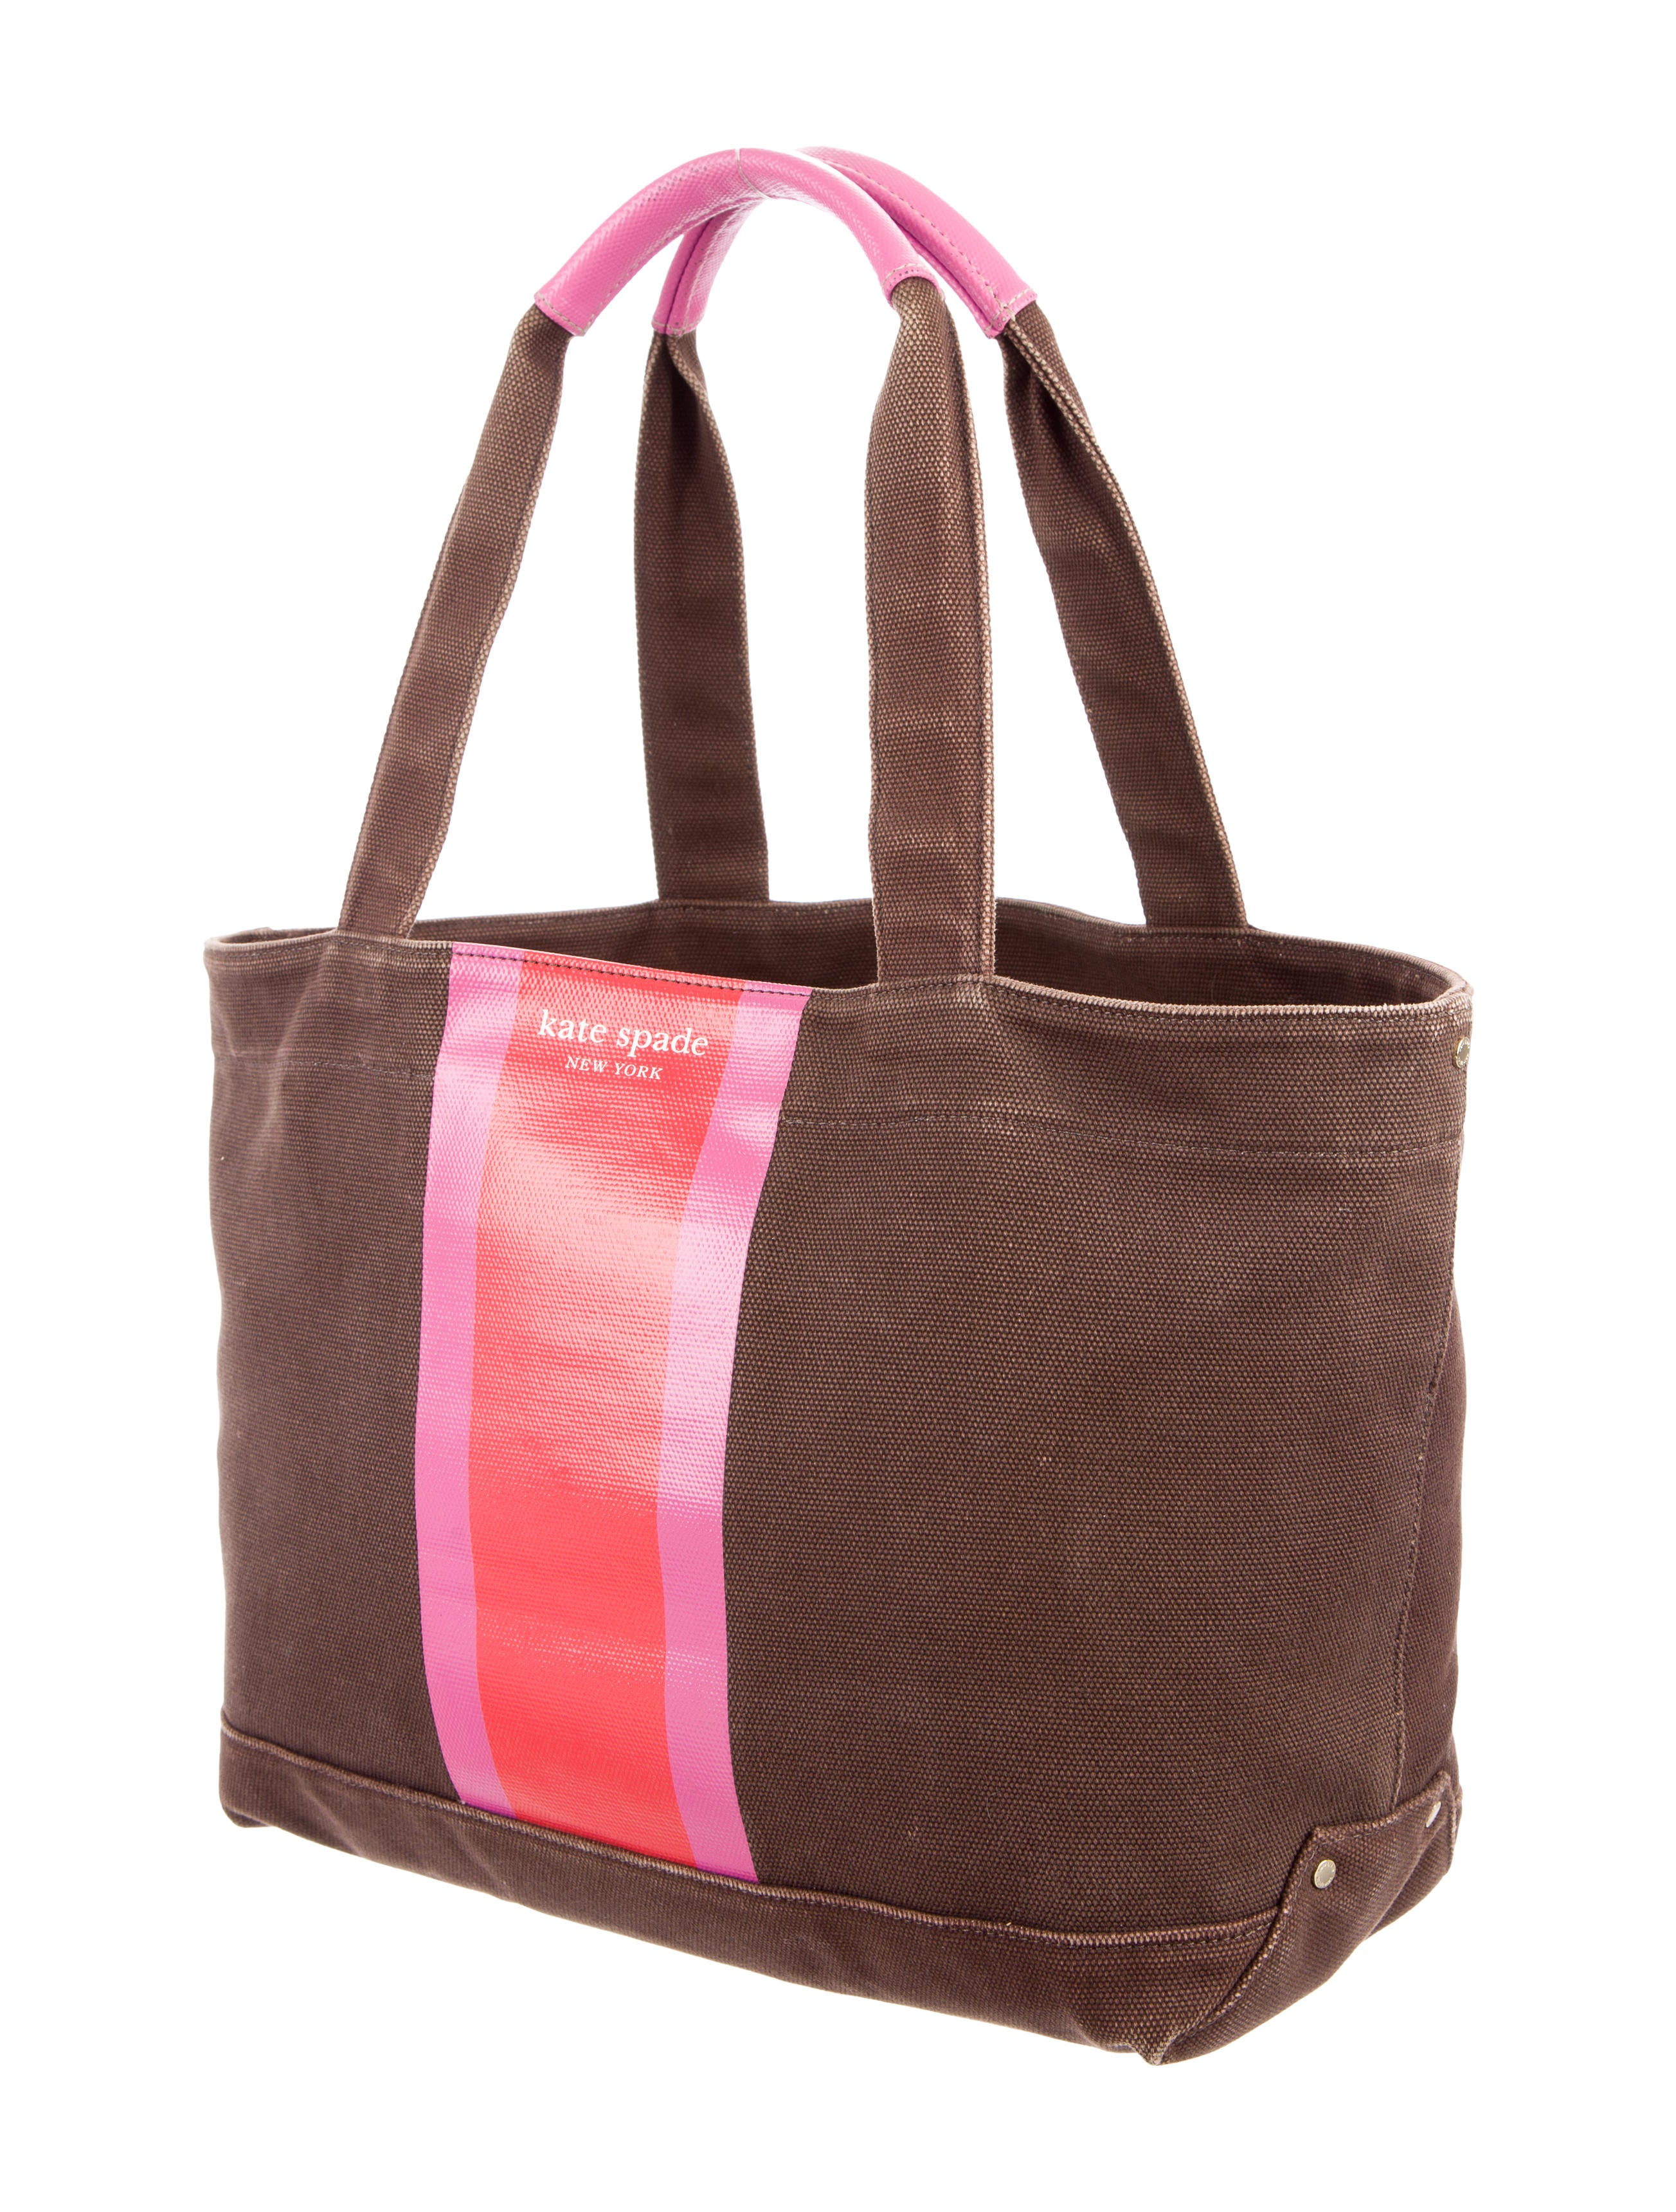 79ee039ceed1 Who Is Going To Buy Kate Spade Most Popular Kate Spade Handbags ...